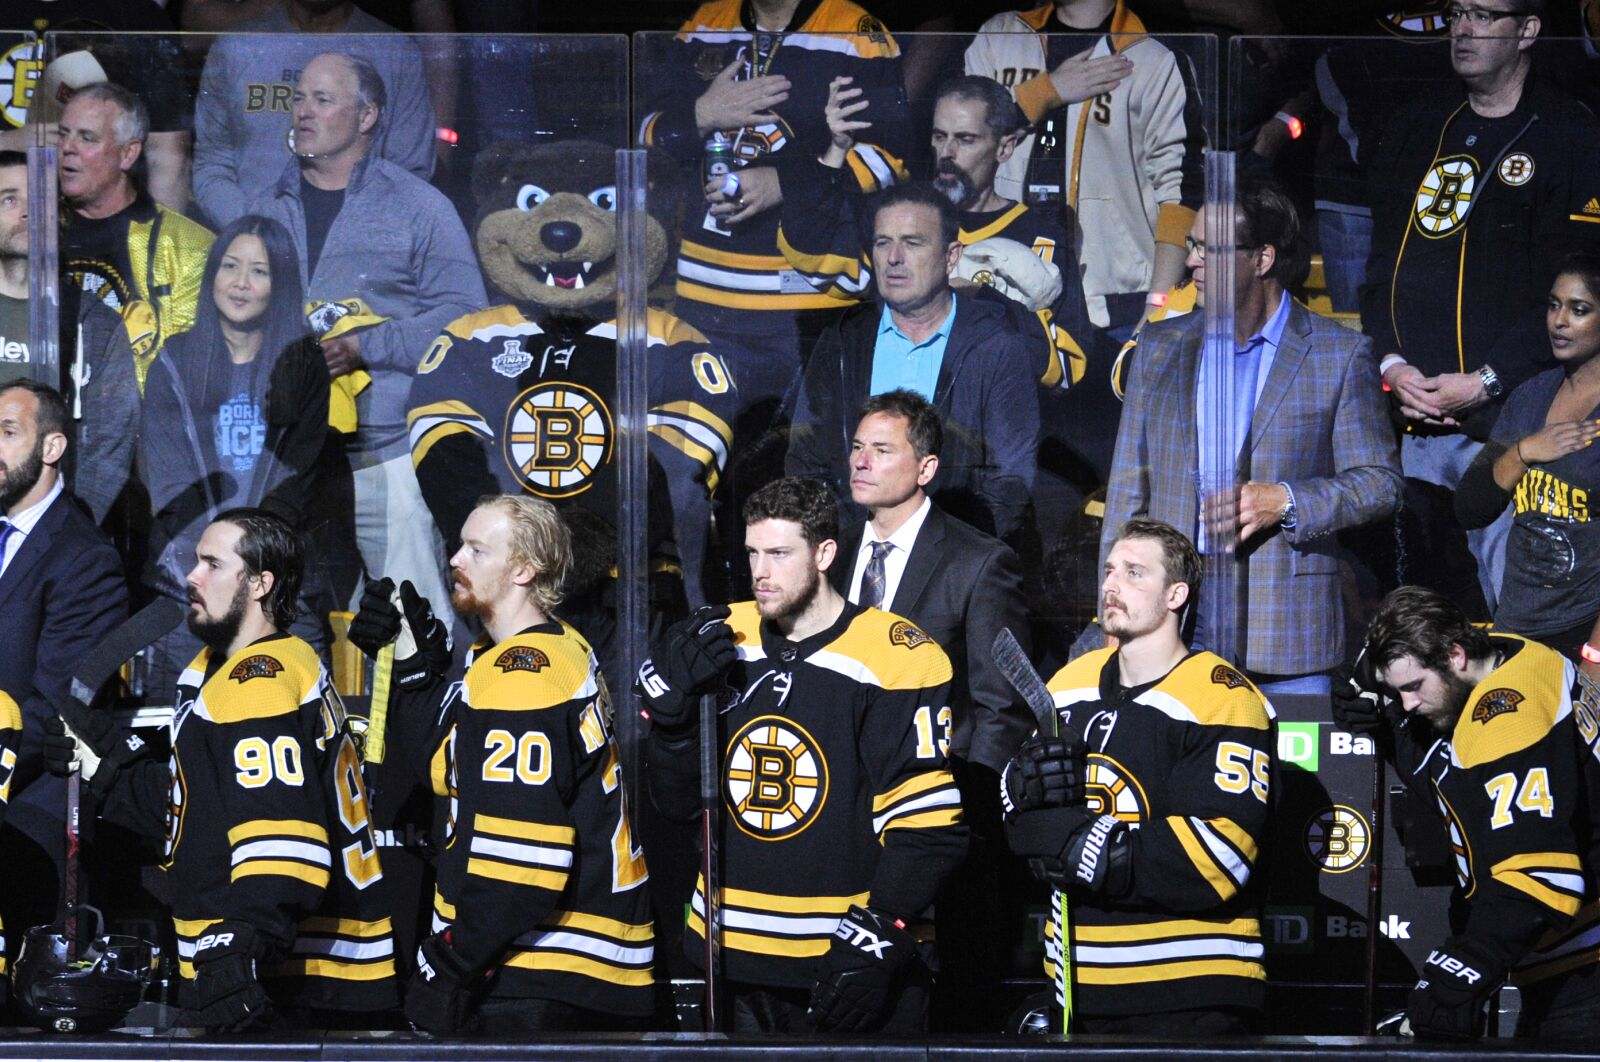 Boston Bruins: Salary cap increase means something has got to give